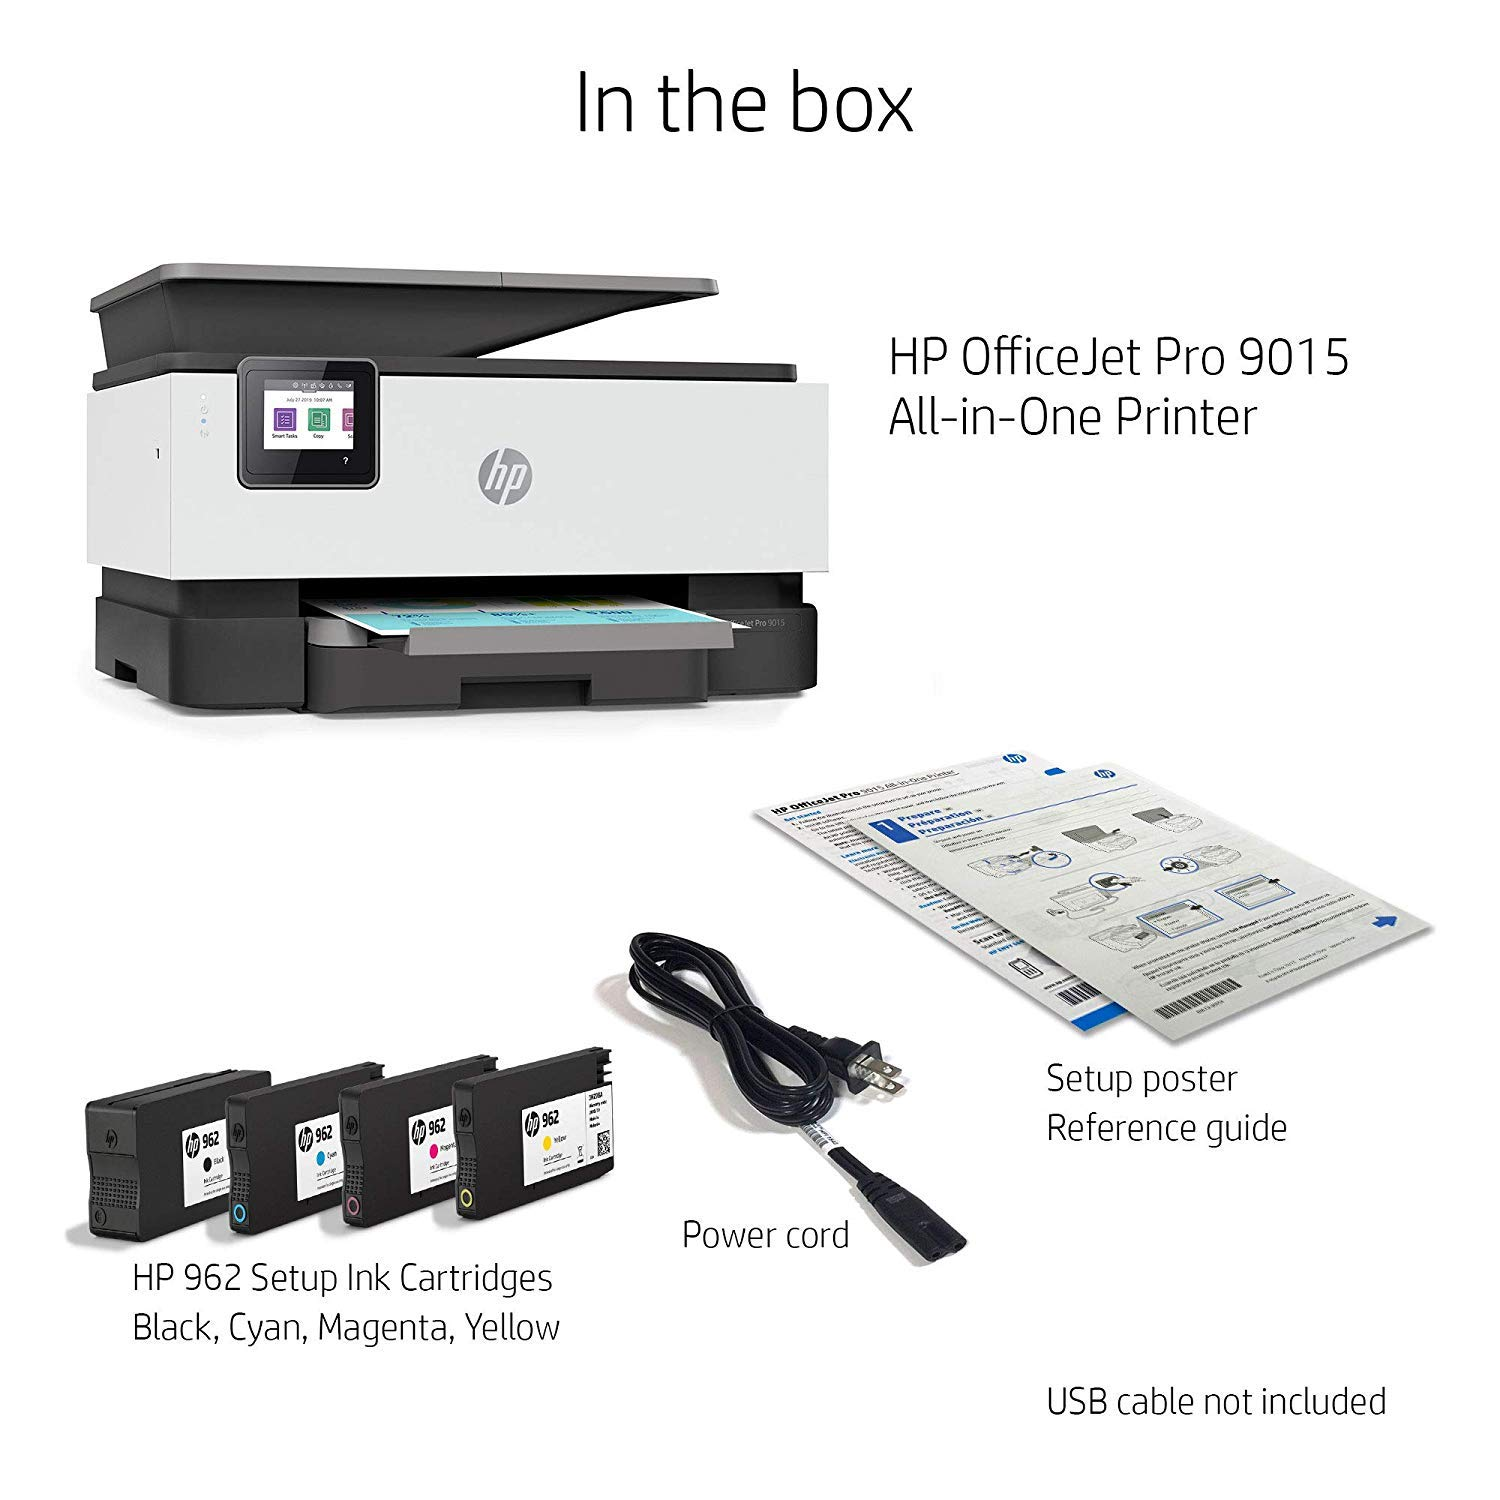 HP OfficeJet Pro 9015 All-in-One Wireless Printer, with Smart Tasks for Smart Office Productivity & Never Run Out of Ink with HP Instant Ink (1KR42A) by HP (Image #10)